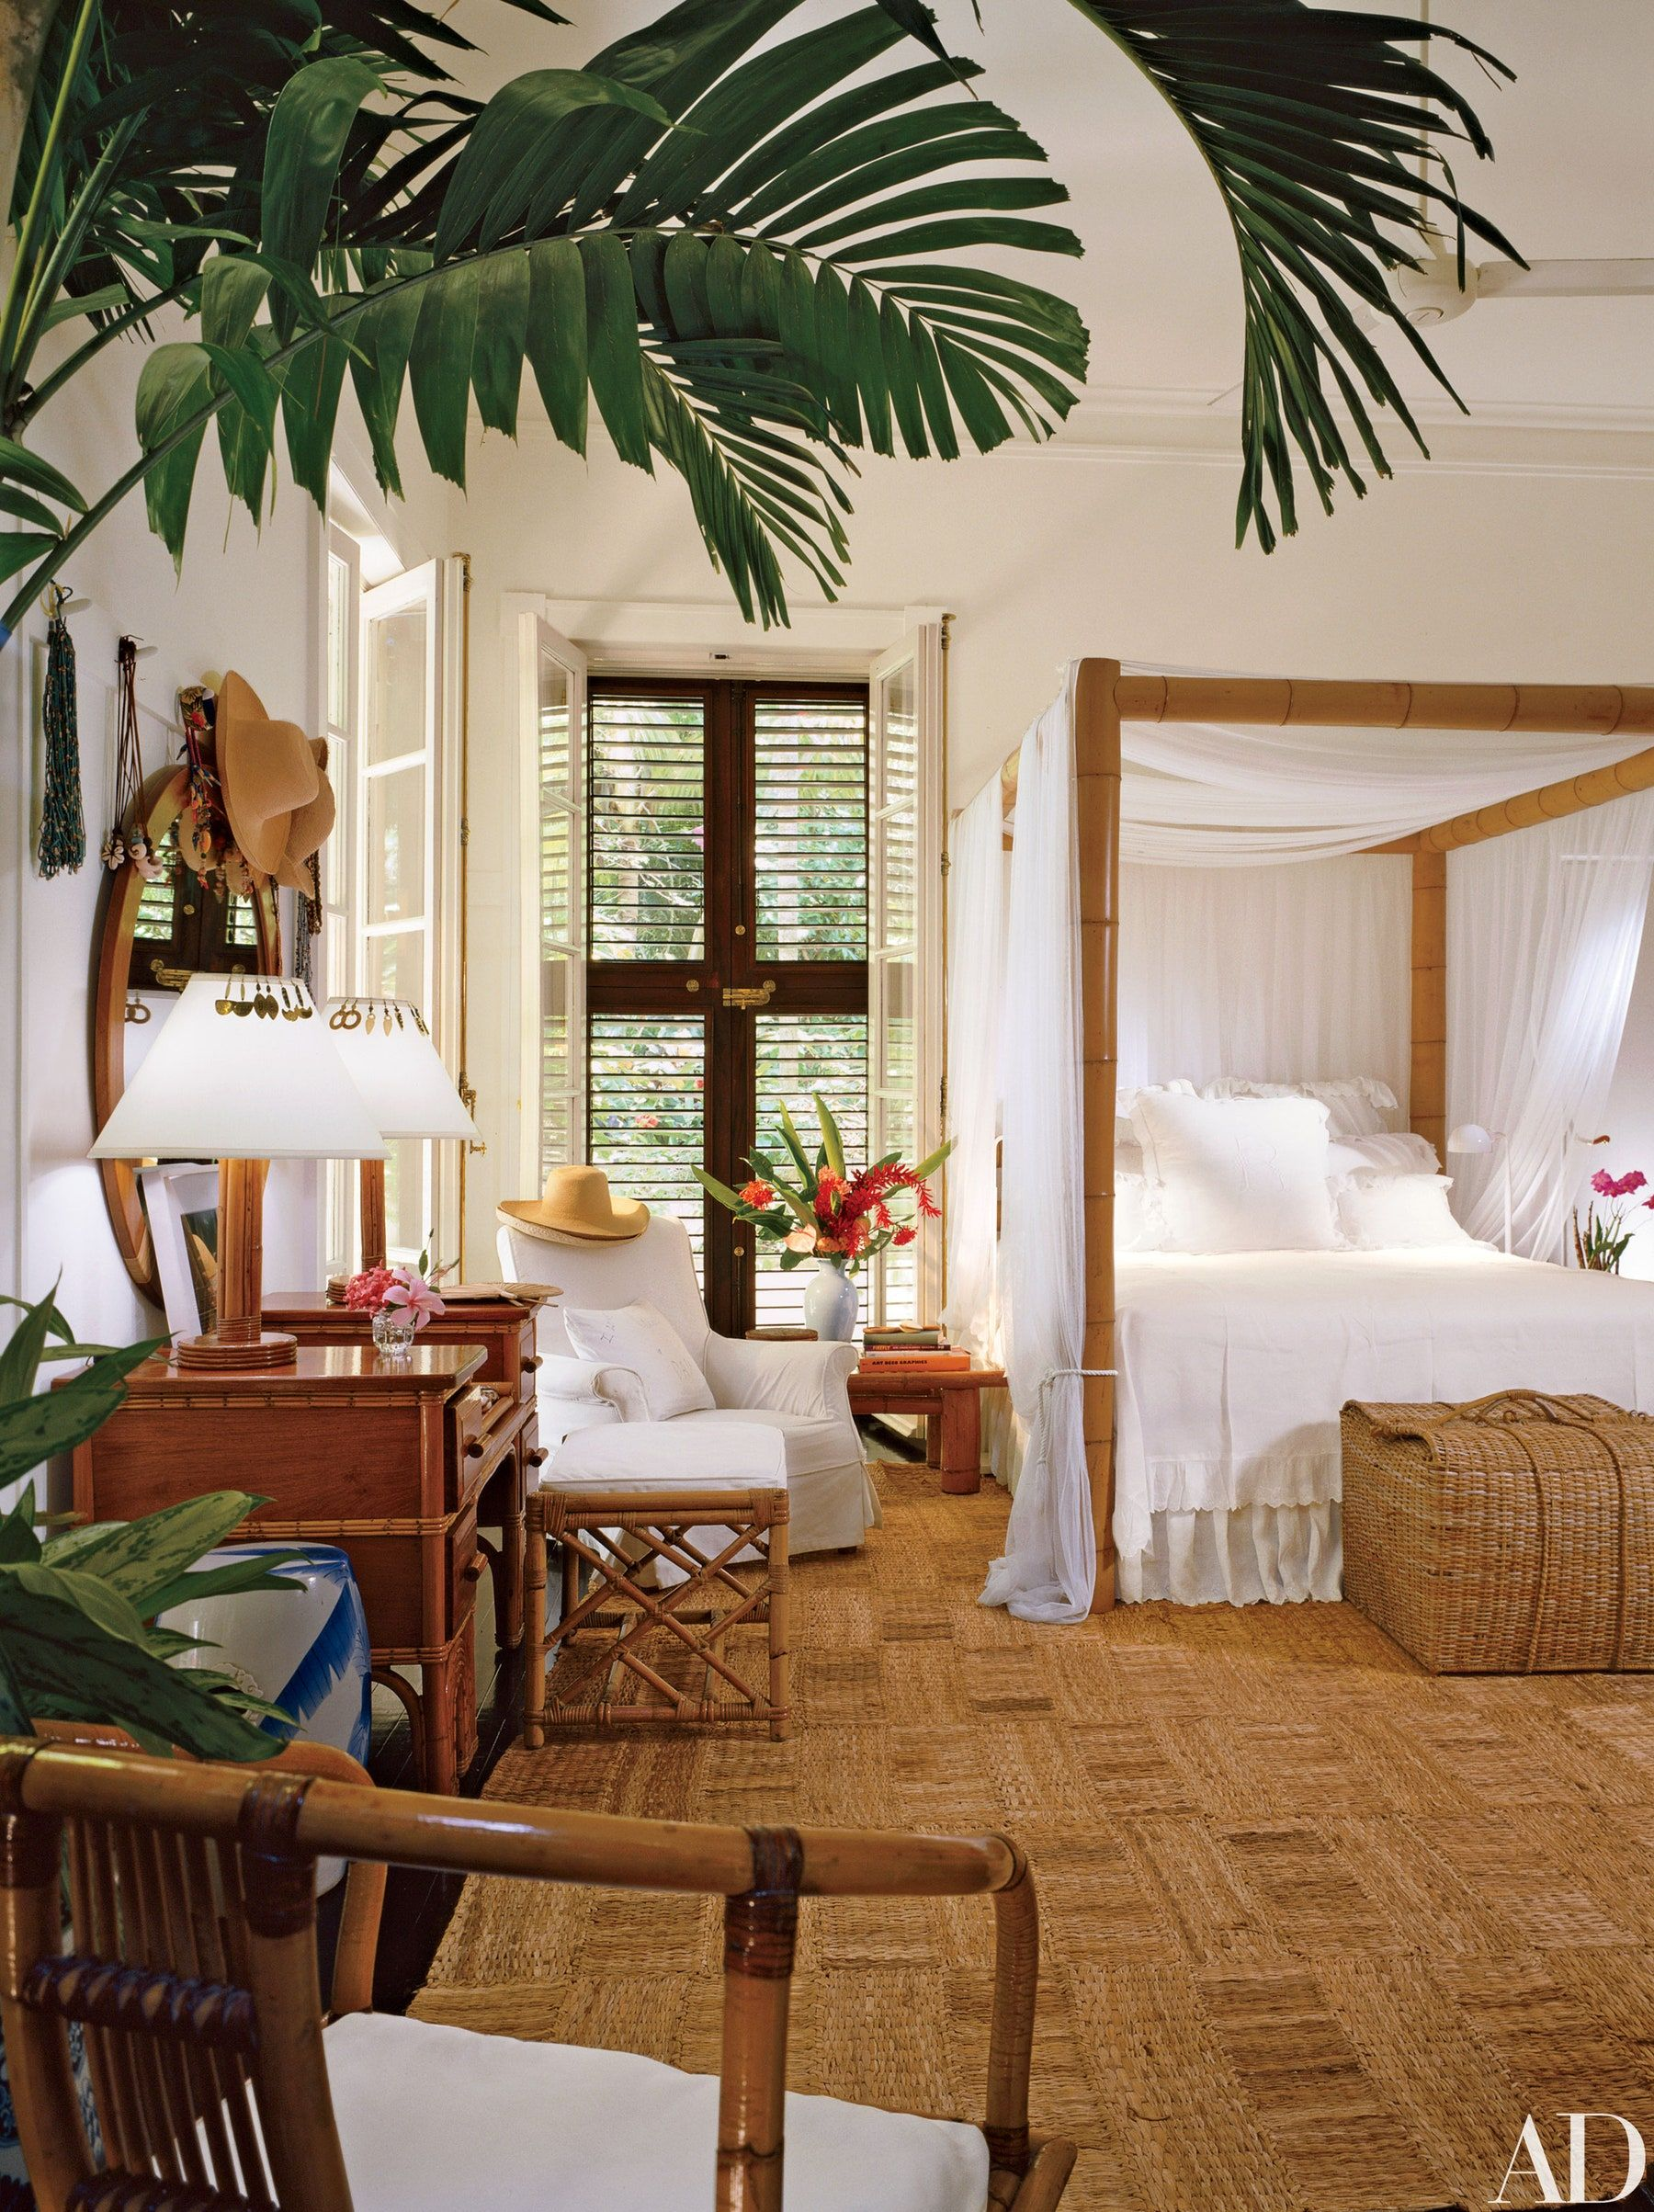 Take A Look Inside Ralph Lauren S House In Jamaica Architectural Digest British Colonial Decor Tropical Home Decor Beach House Interior